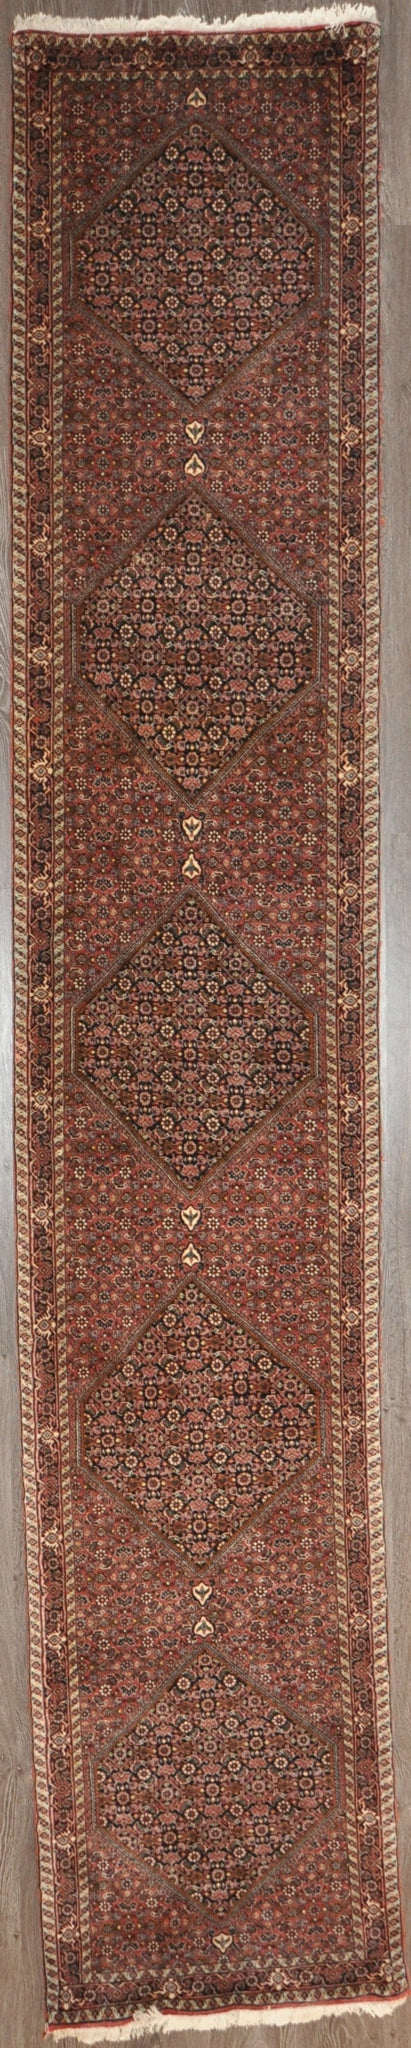 2.7x13.4 Persian bijar runner #73794